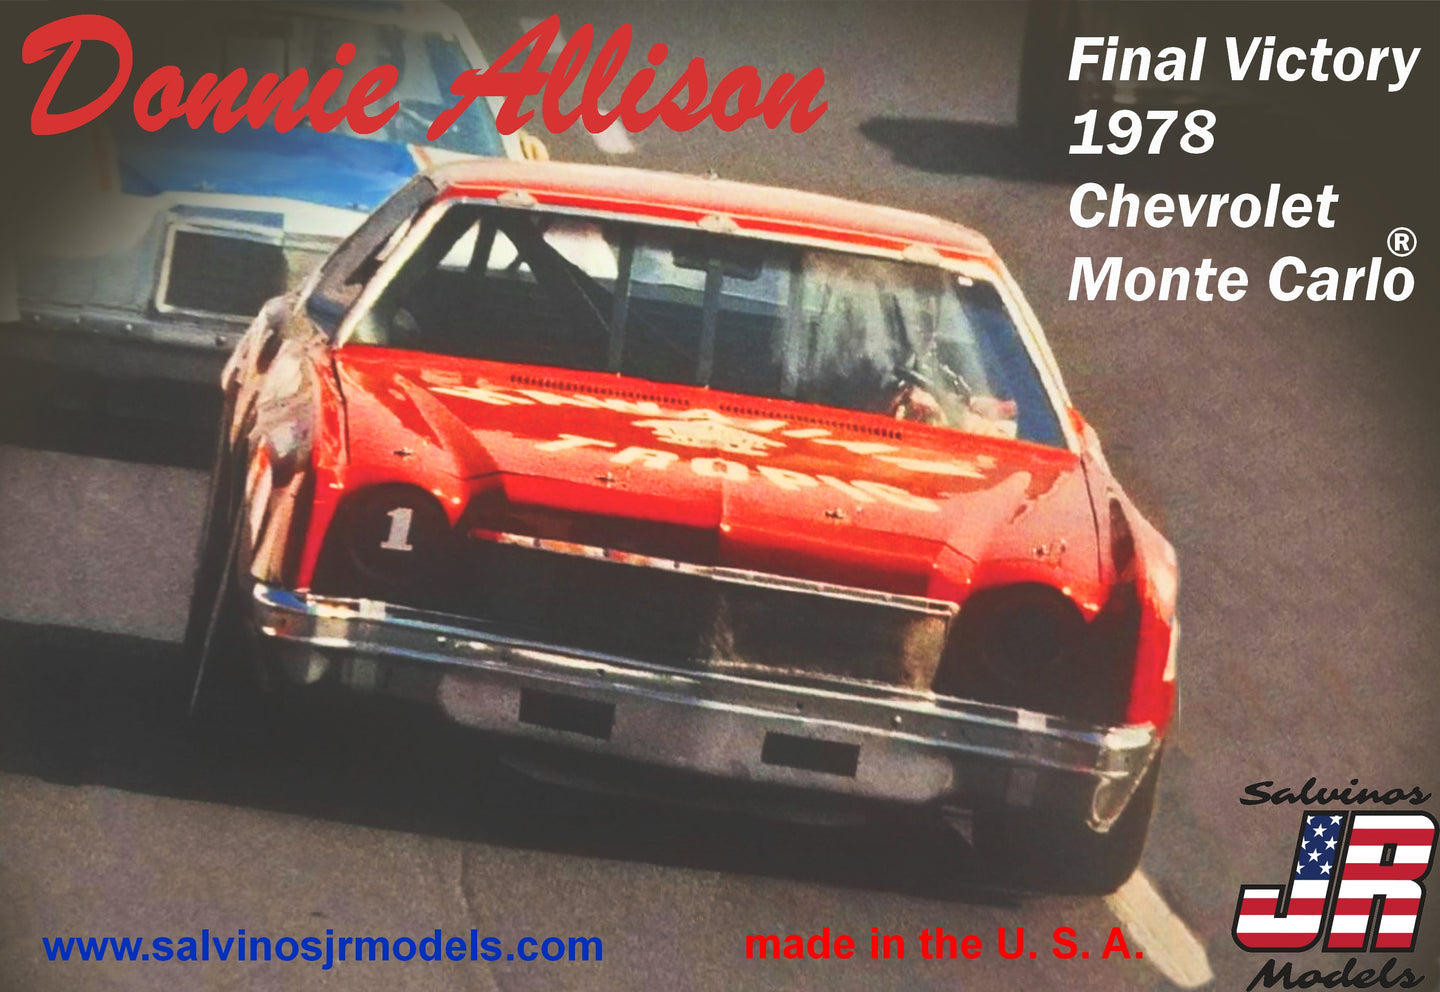 Salvinos 1/25 Donnie Allison 1978 Chevrolet Monte Carlo DAMC1978A